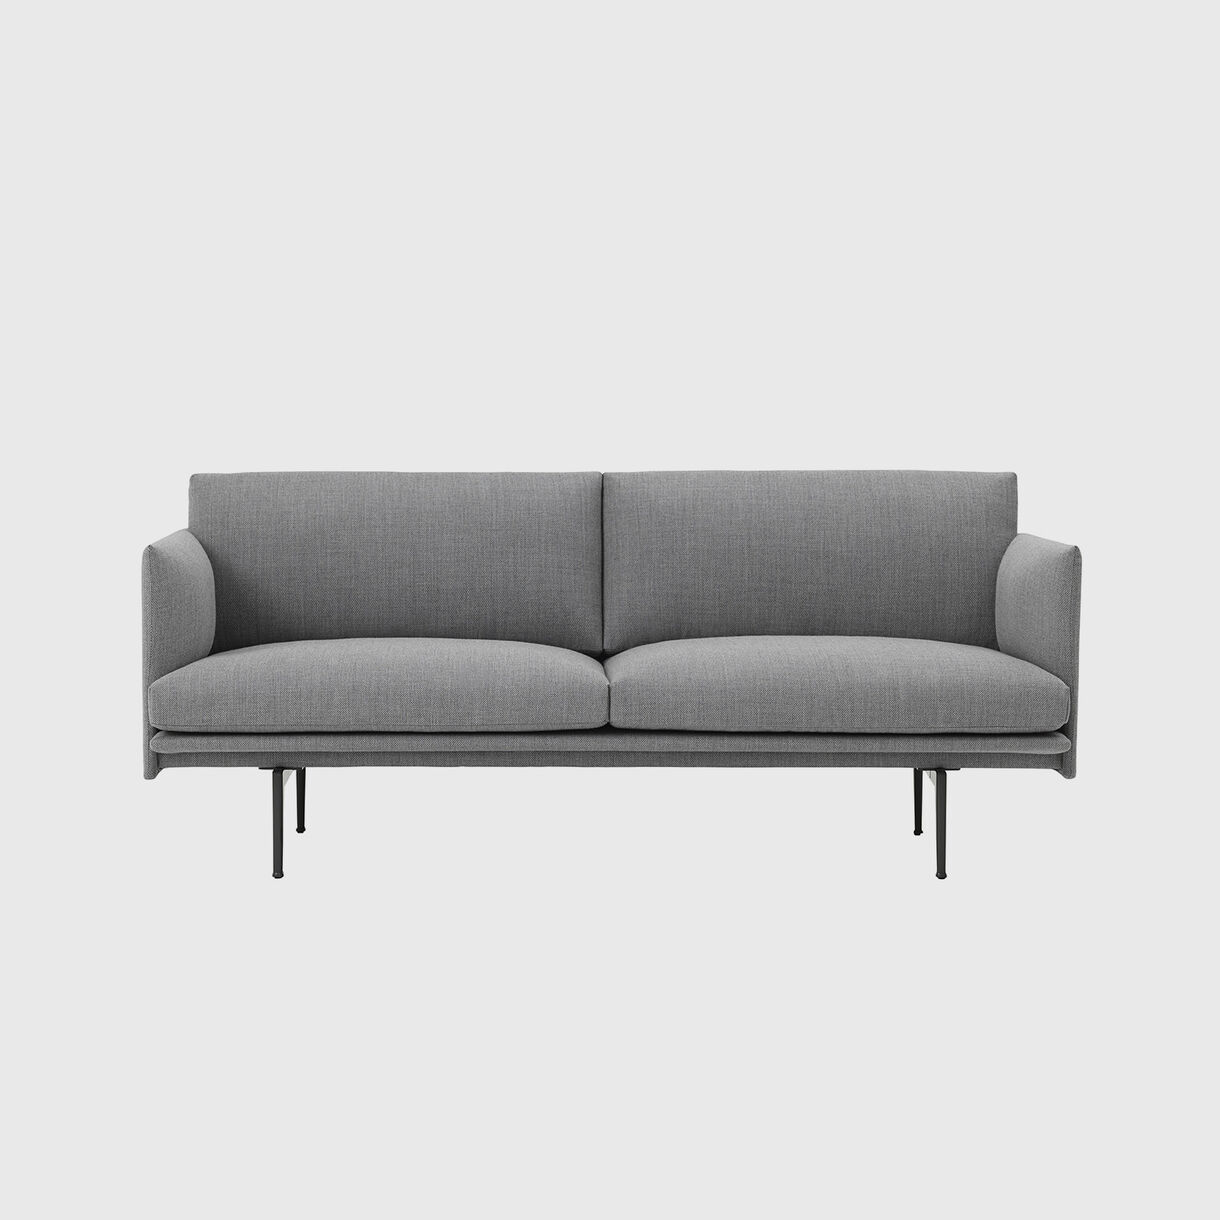 Outline 2 Seater Sofa, Vancouver 14